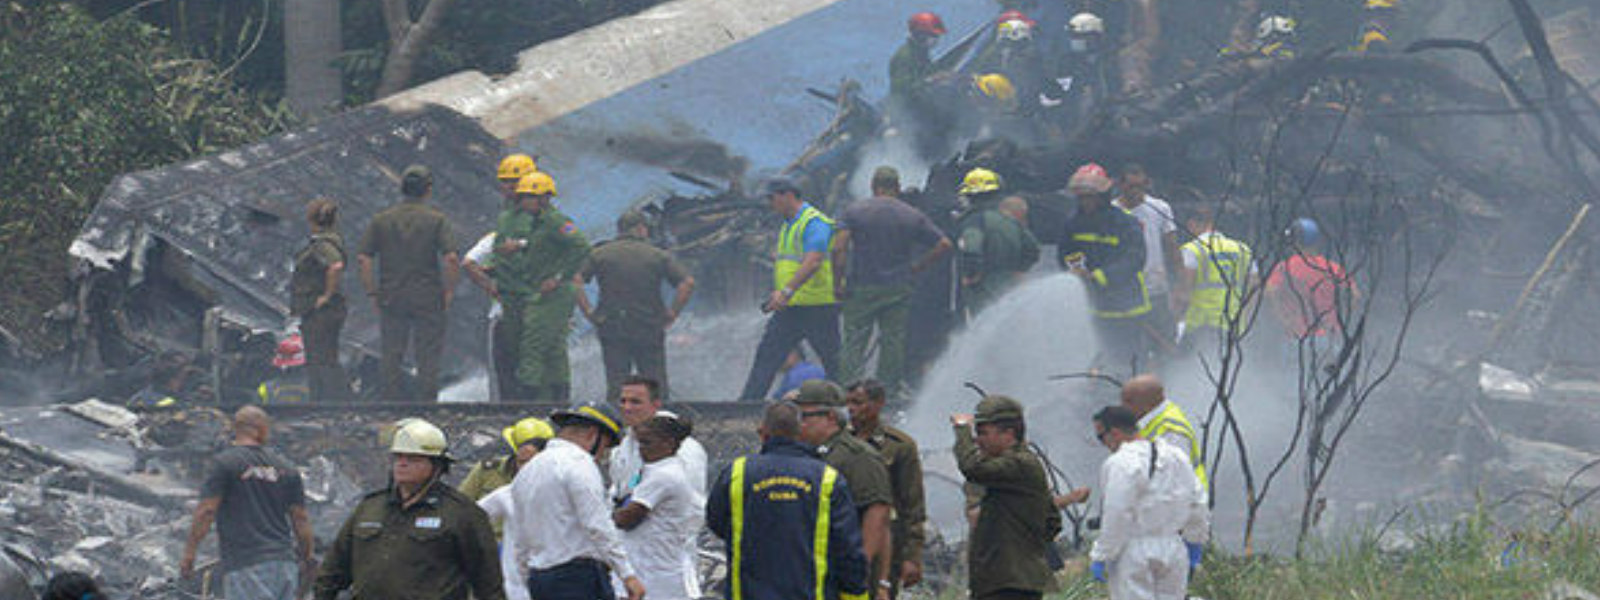 More than 100 killed in Cuban plane crash